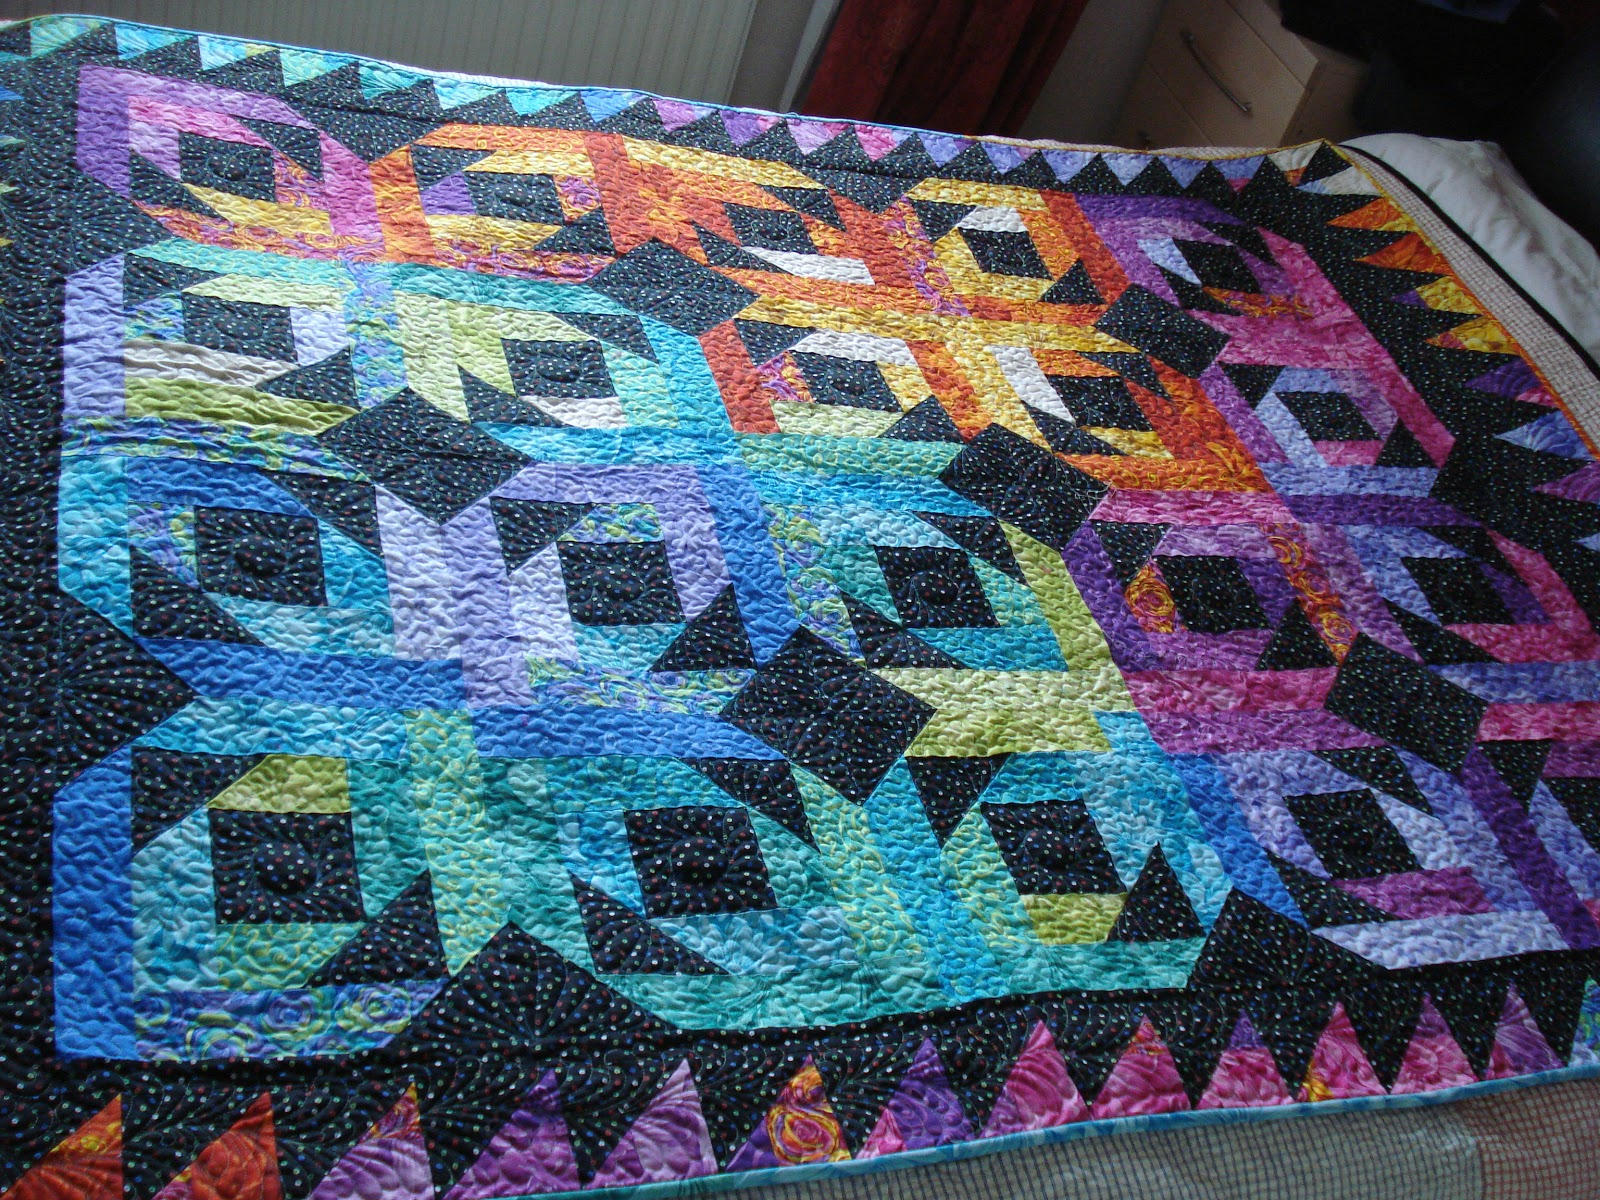 The Nifty Stitcher Quilts